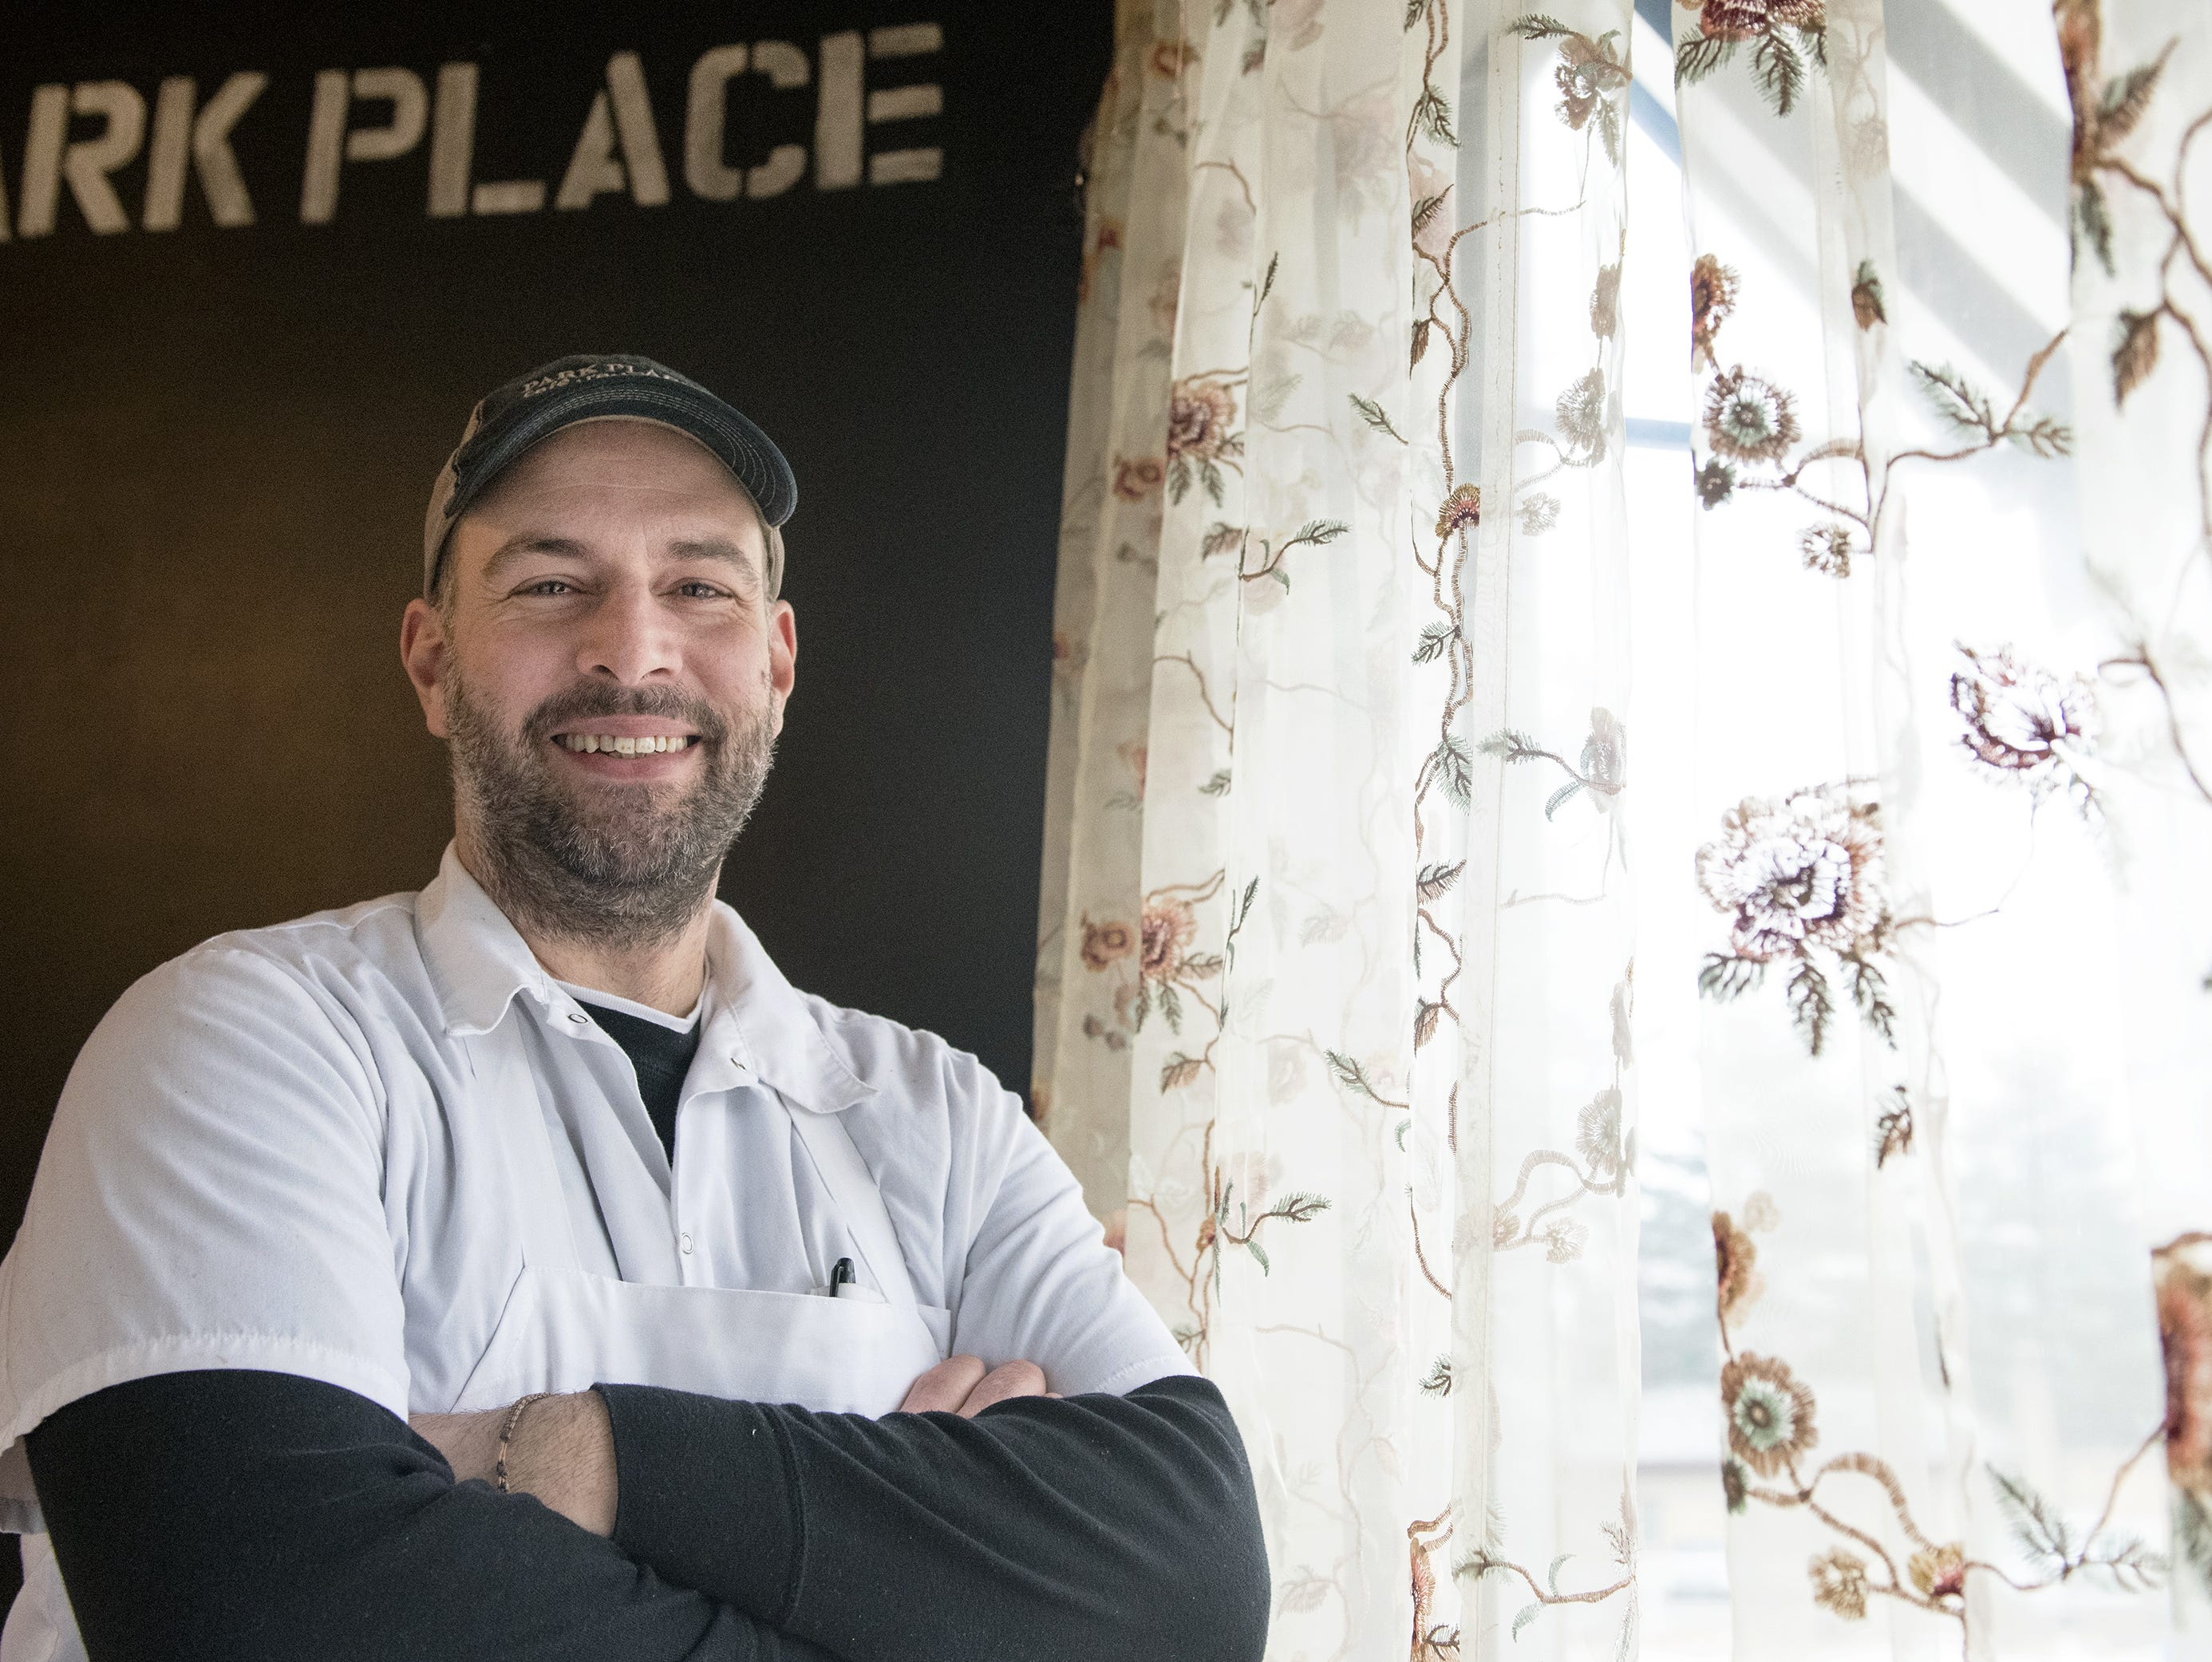 Phil Manganaro, owner/chef of Park Place Cafe & Restaurant in Merchantville,